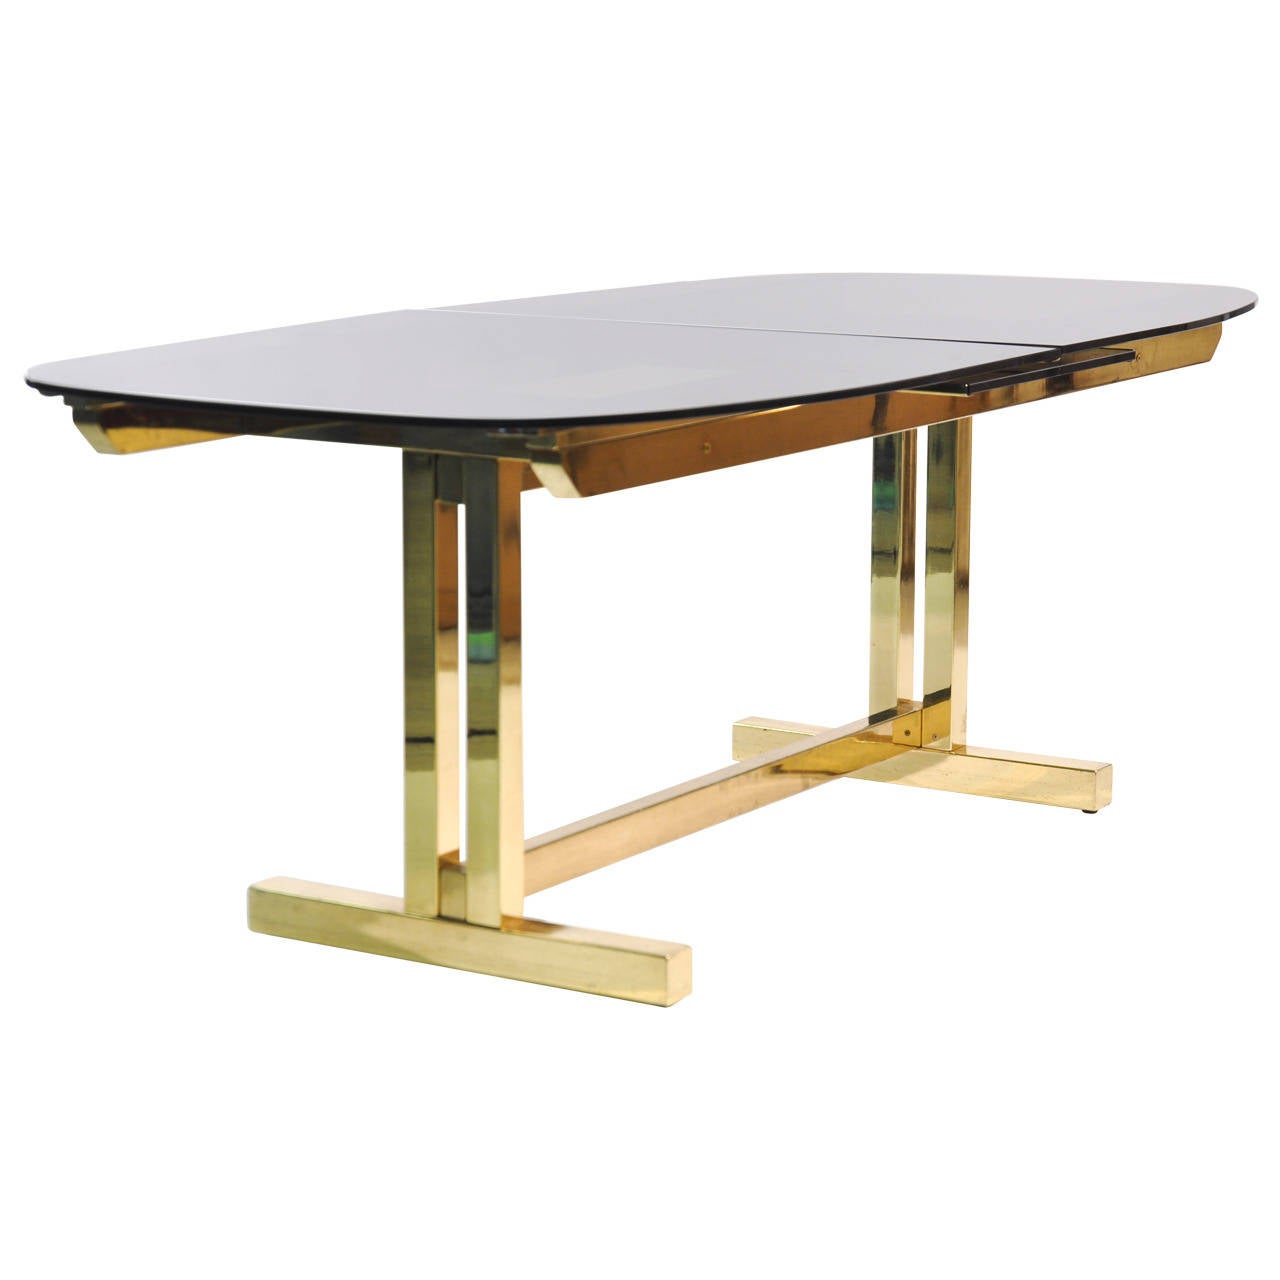 Smoked glass extendable brass dining table at 1stdibs for Extendable glass dining table